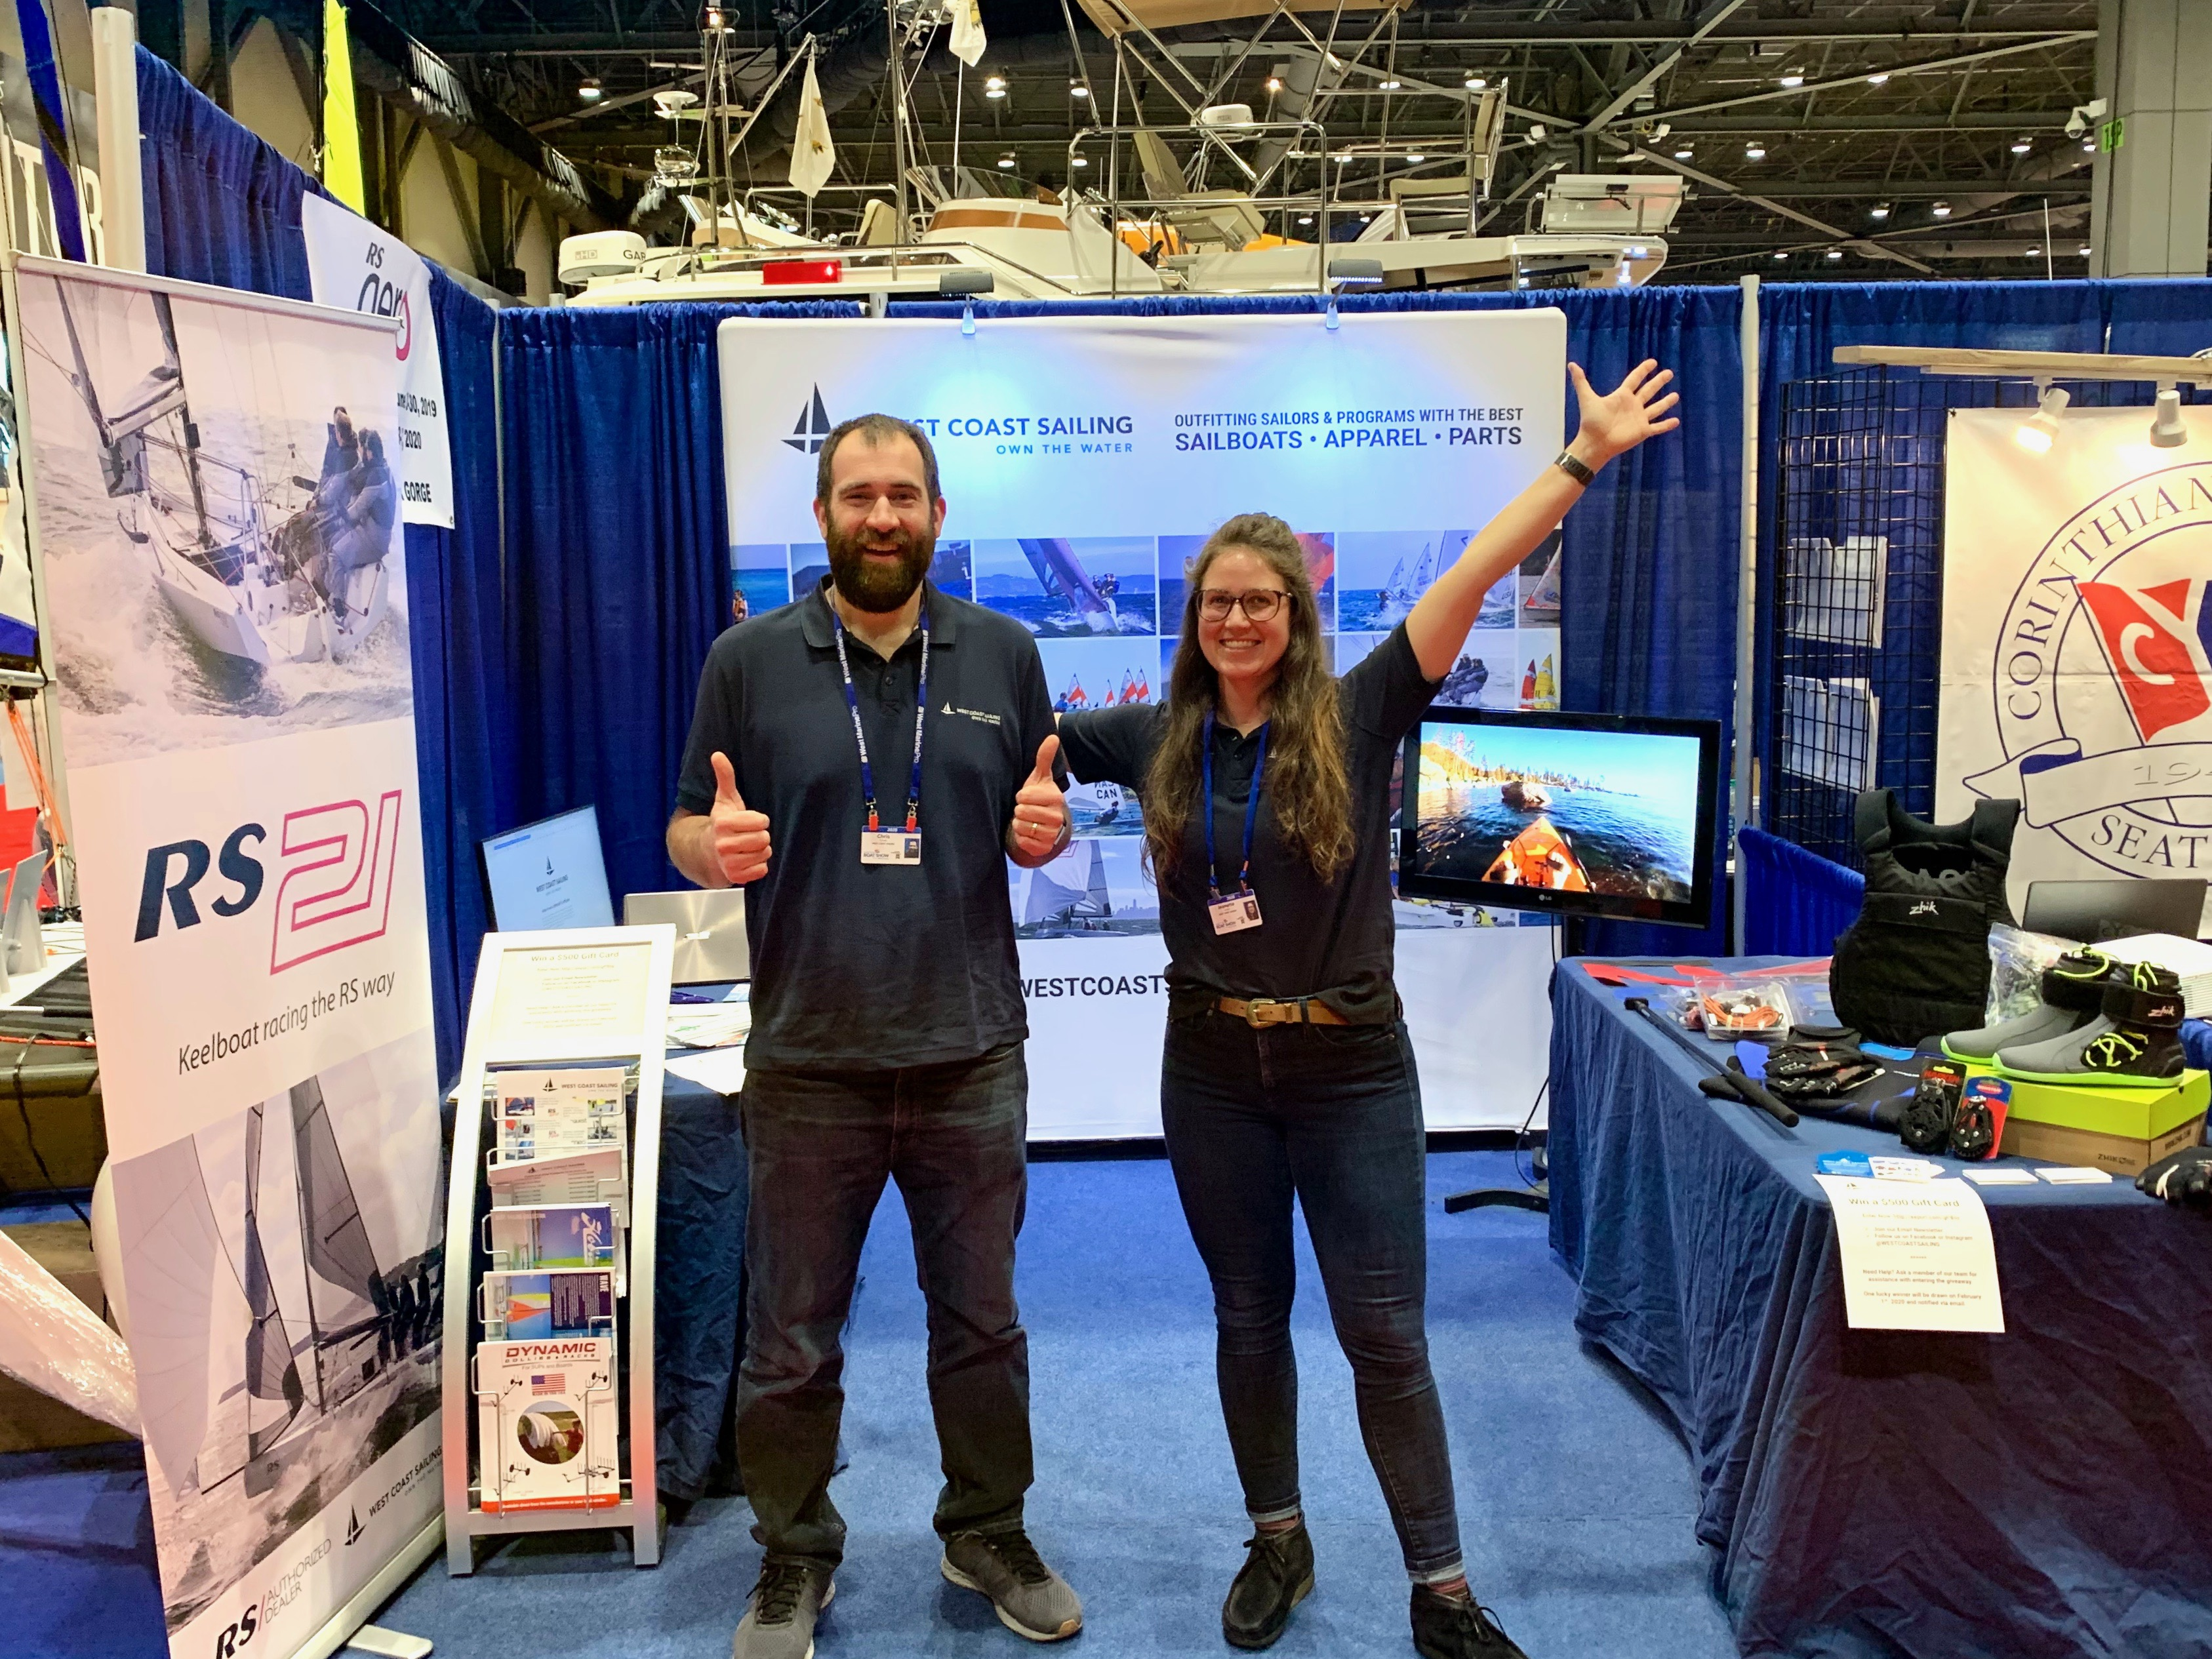 Chris and Jeanette at the Seattle Boat Show